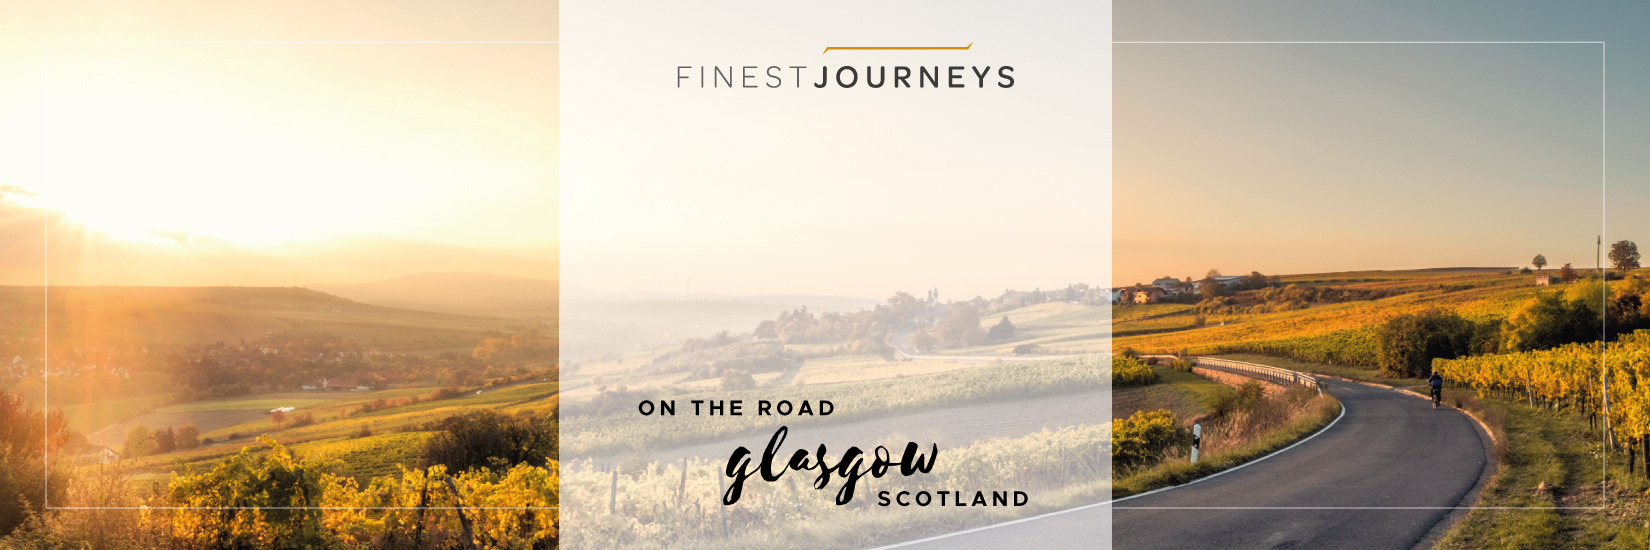 IMG : Finest Journeys On the Road – Glasgow